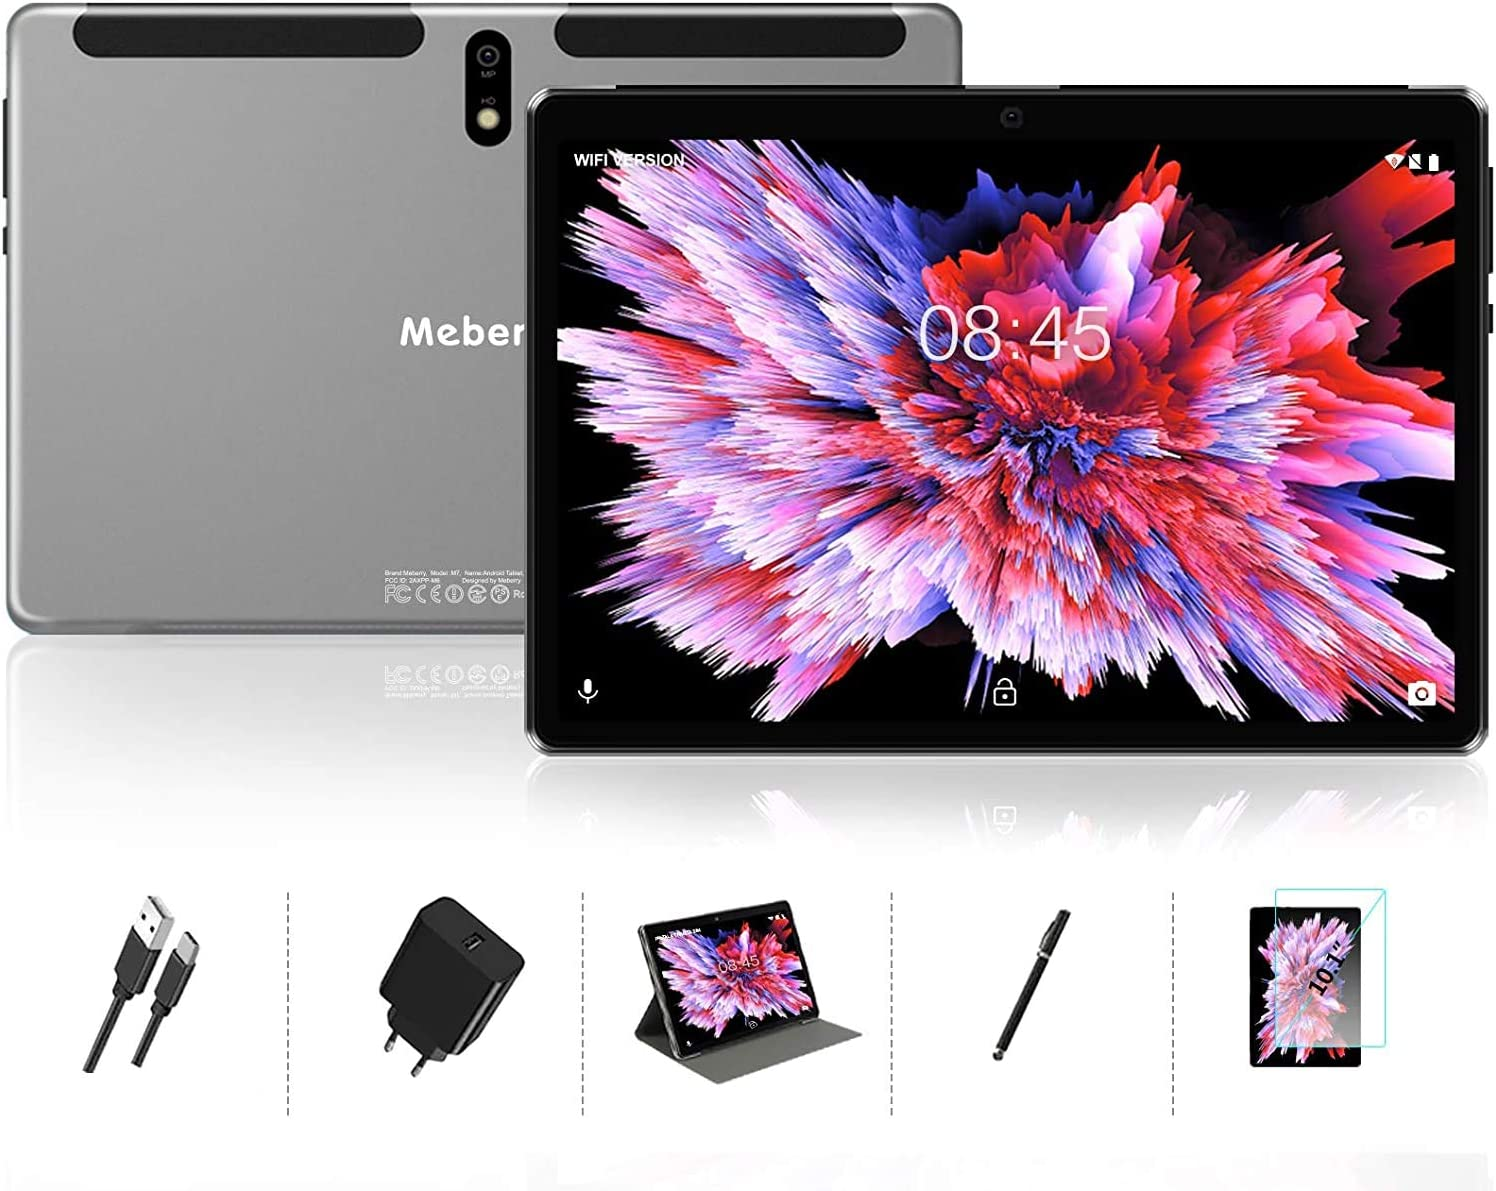 Android 10.0 Tablet : MEBERRY 10 inch Tablets with 4GB RAM+64GB ROM| 128GB Expansion| Octa-Core Processor| Google Certified| 8000mAh Battery| WiFi| GPS| Double Camera, Grey